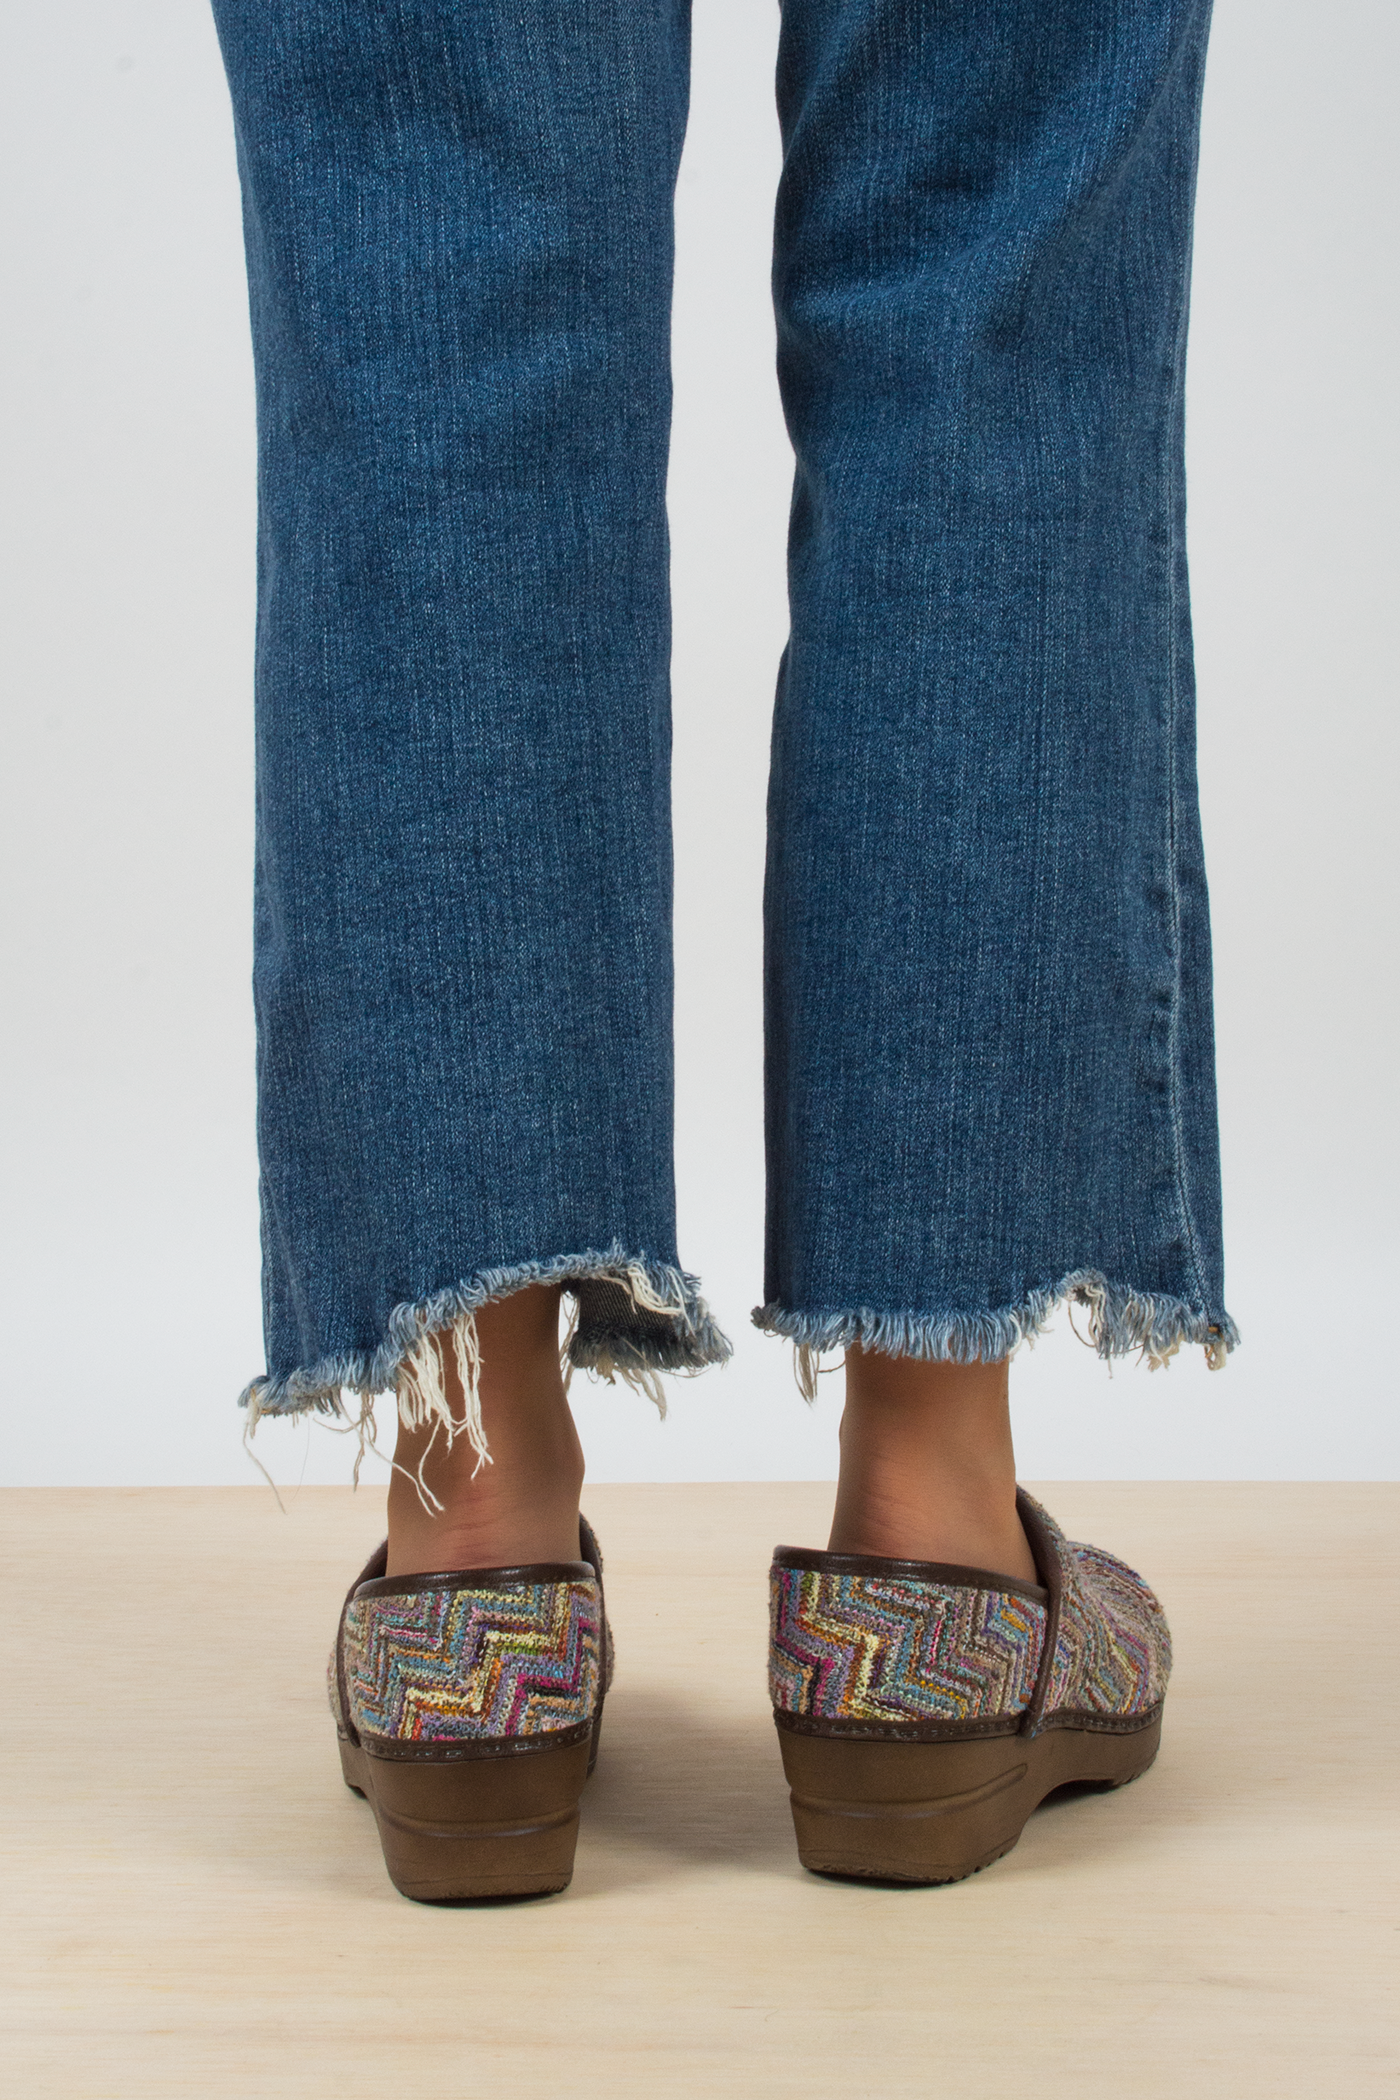 vintage rainbow knit chevron clogs